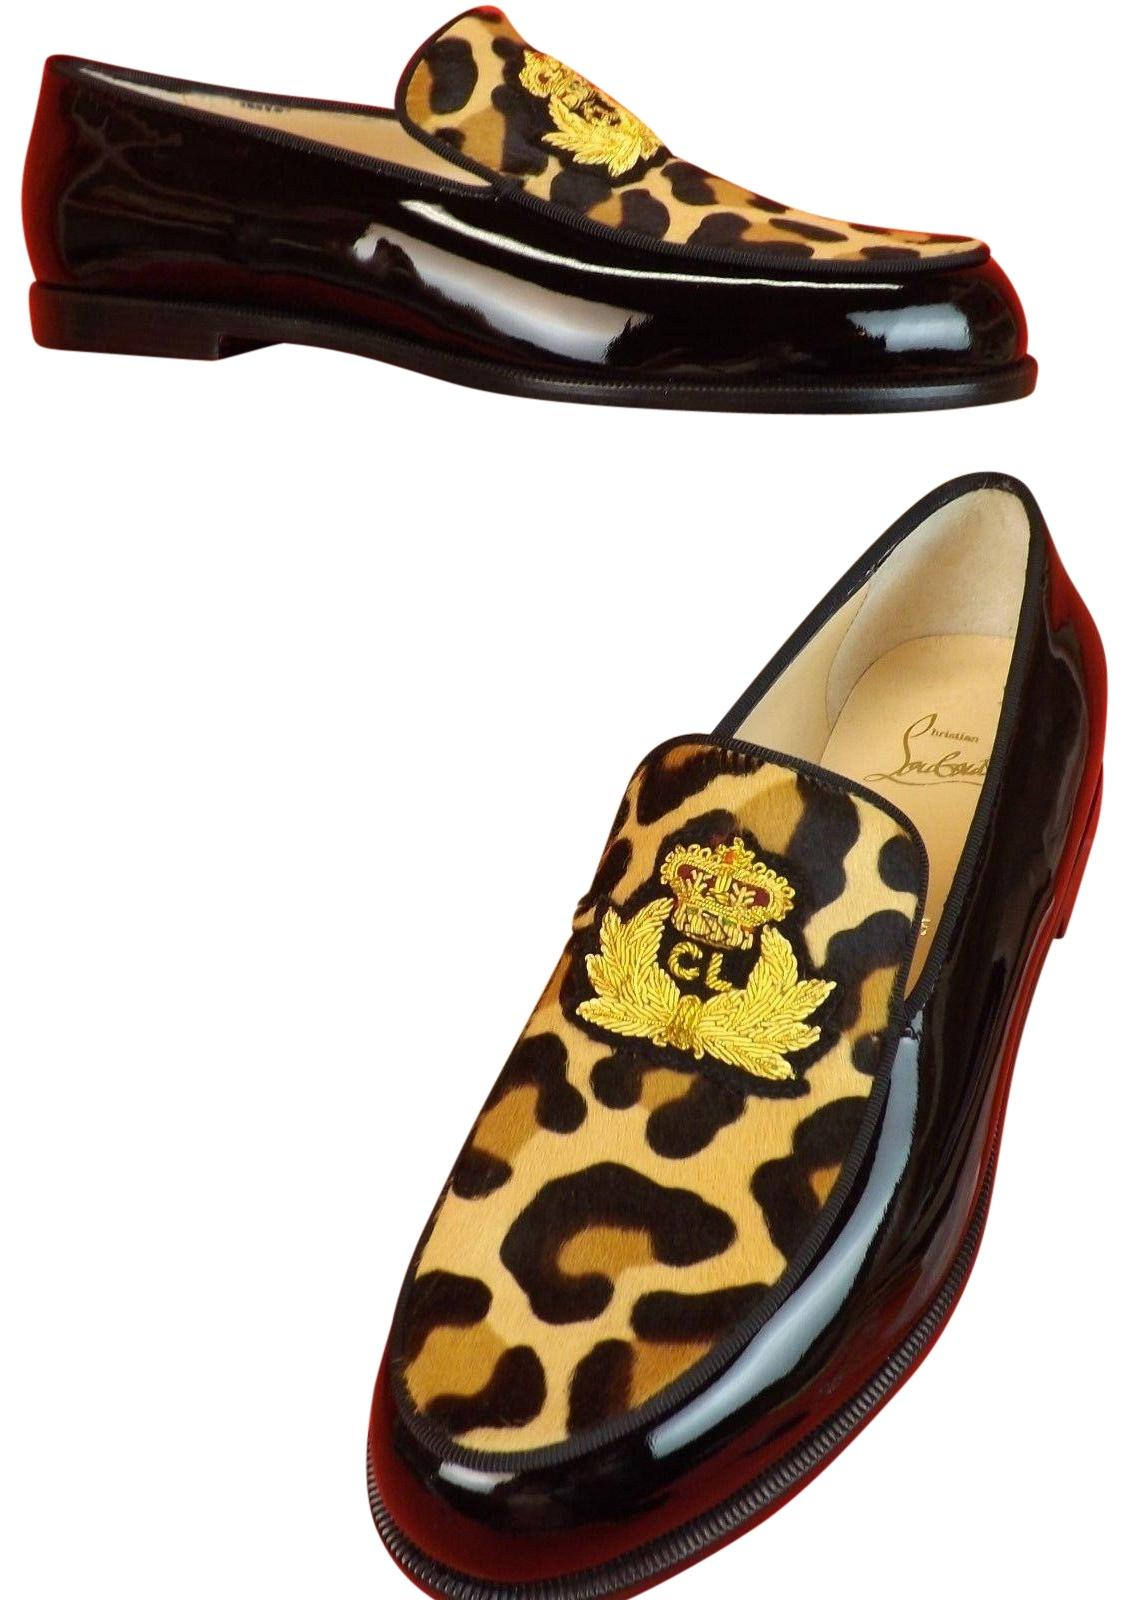 Christian Louboutin Black/Gold Laperouza Pony Hair Patent Leather Applique Loafers Flats Size EU 40 (Approx. US 10) Regular (M, B)